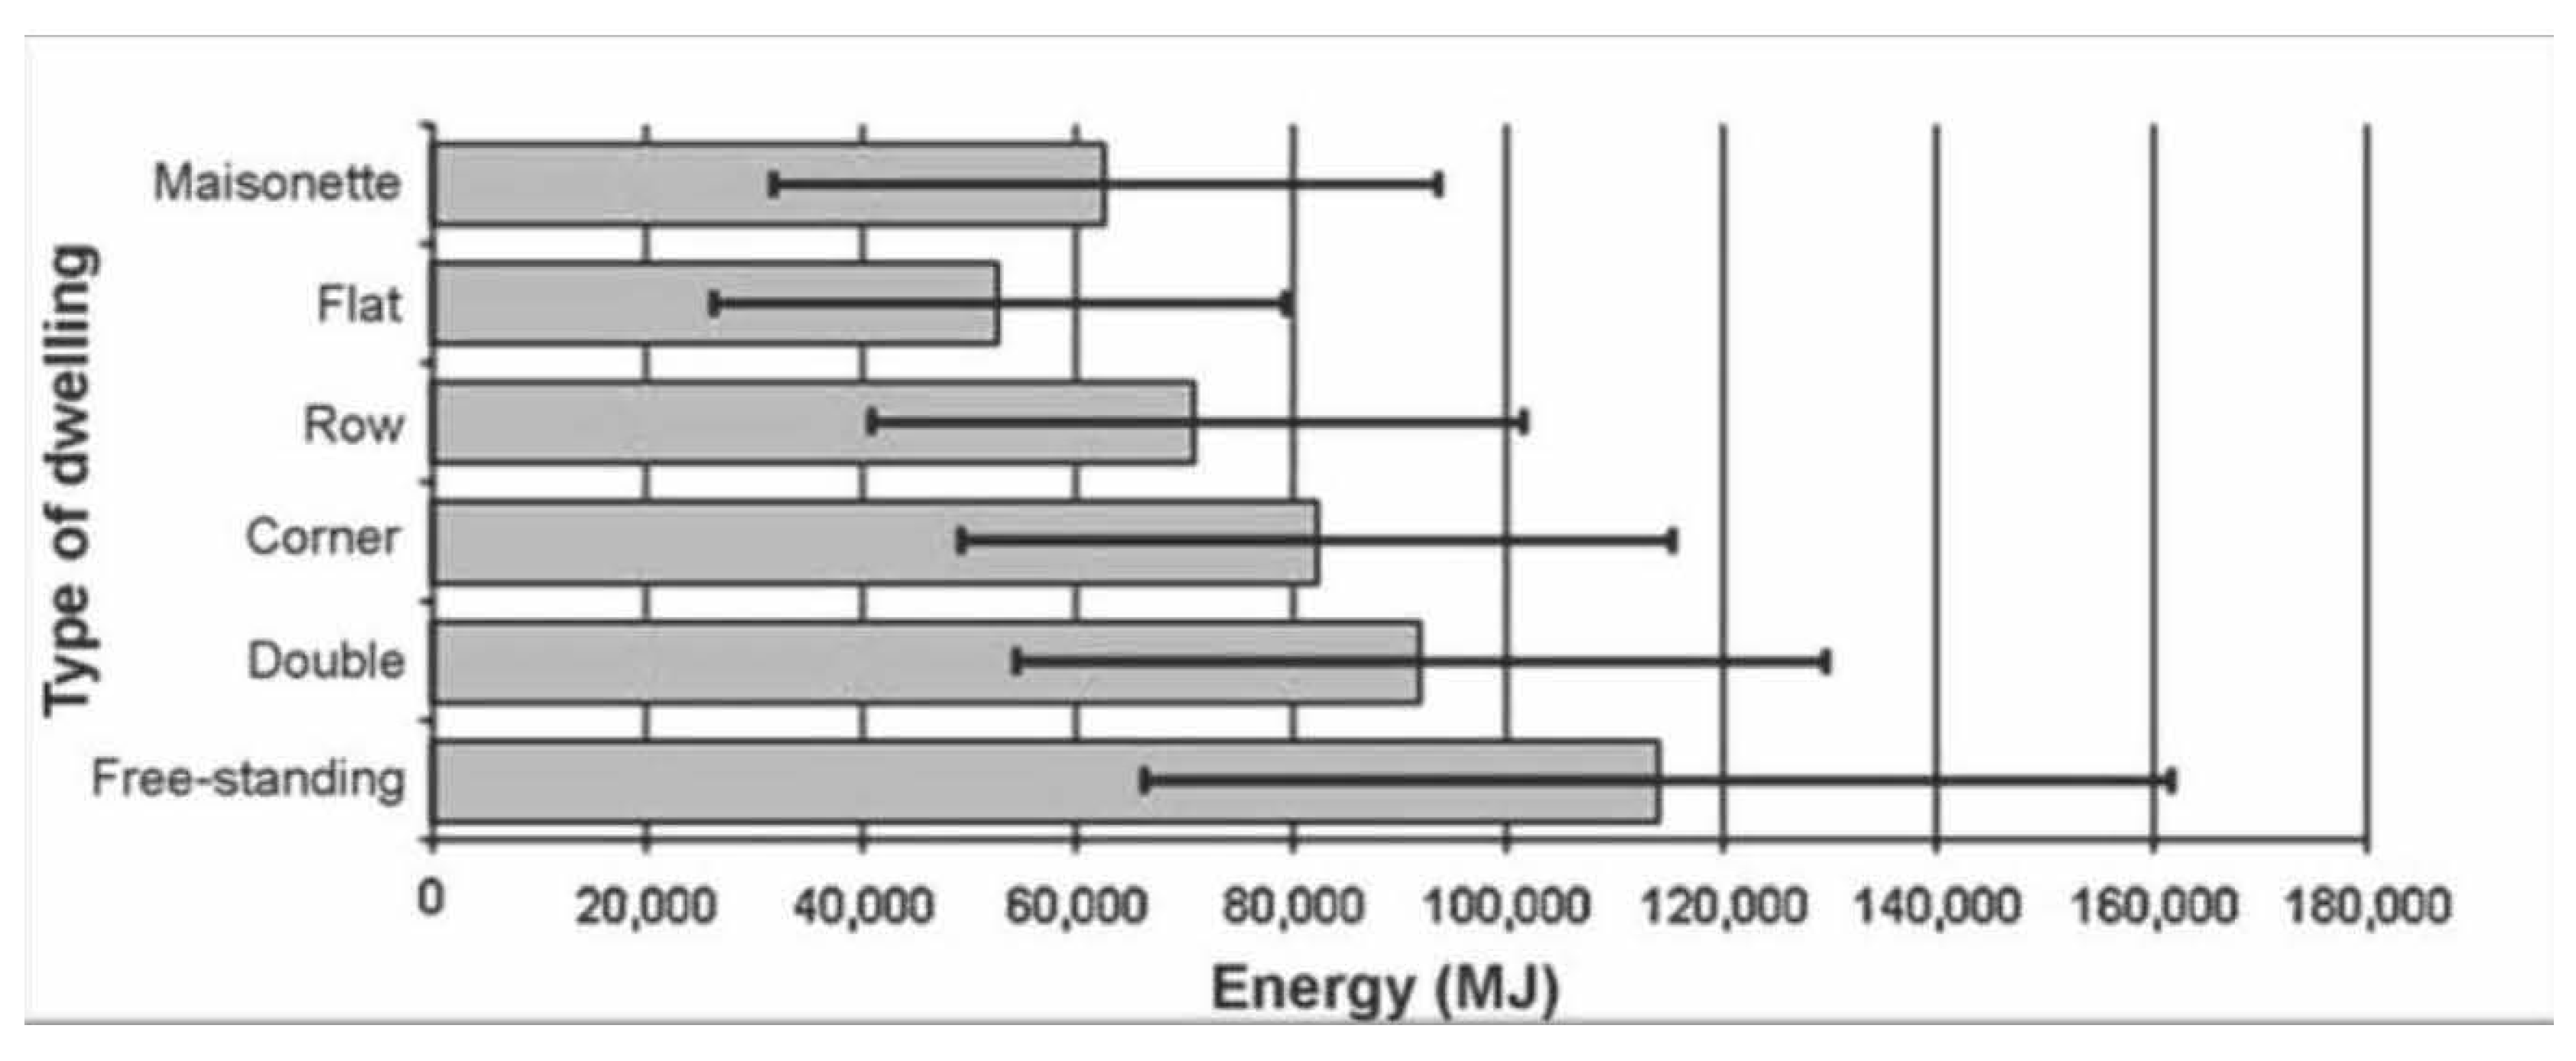 Energies | Free Full Text | A Data Analysis Technique To Estimate The  Thermal Characteristics Of A House | HTML